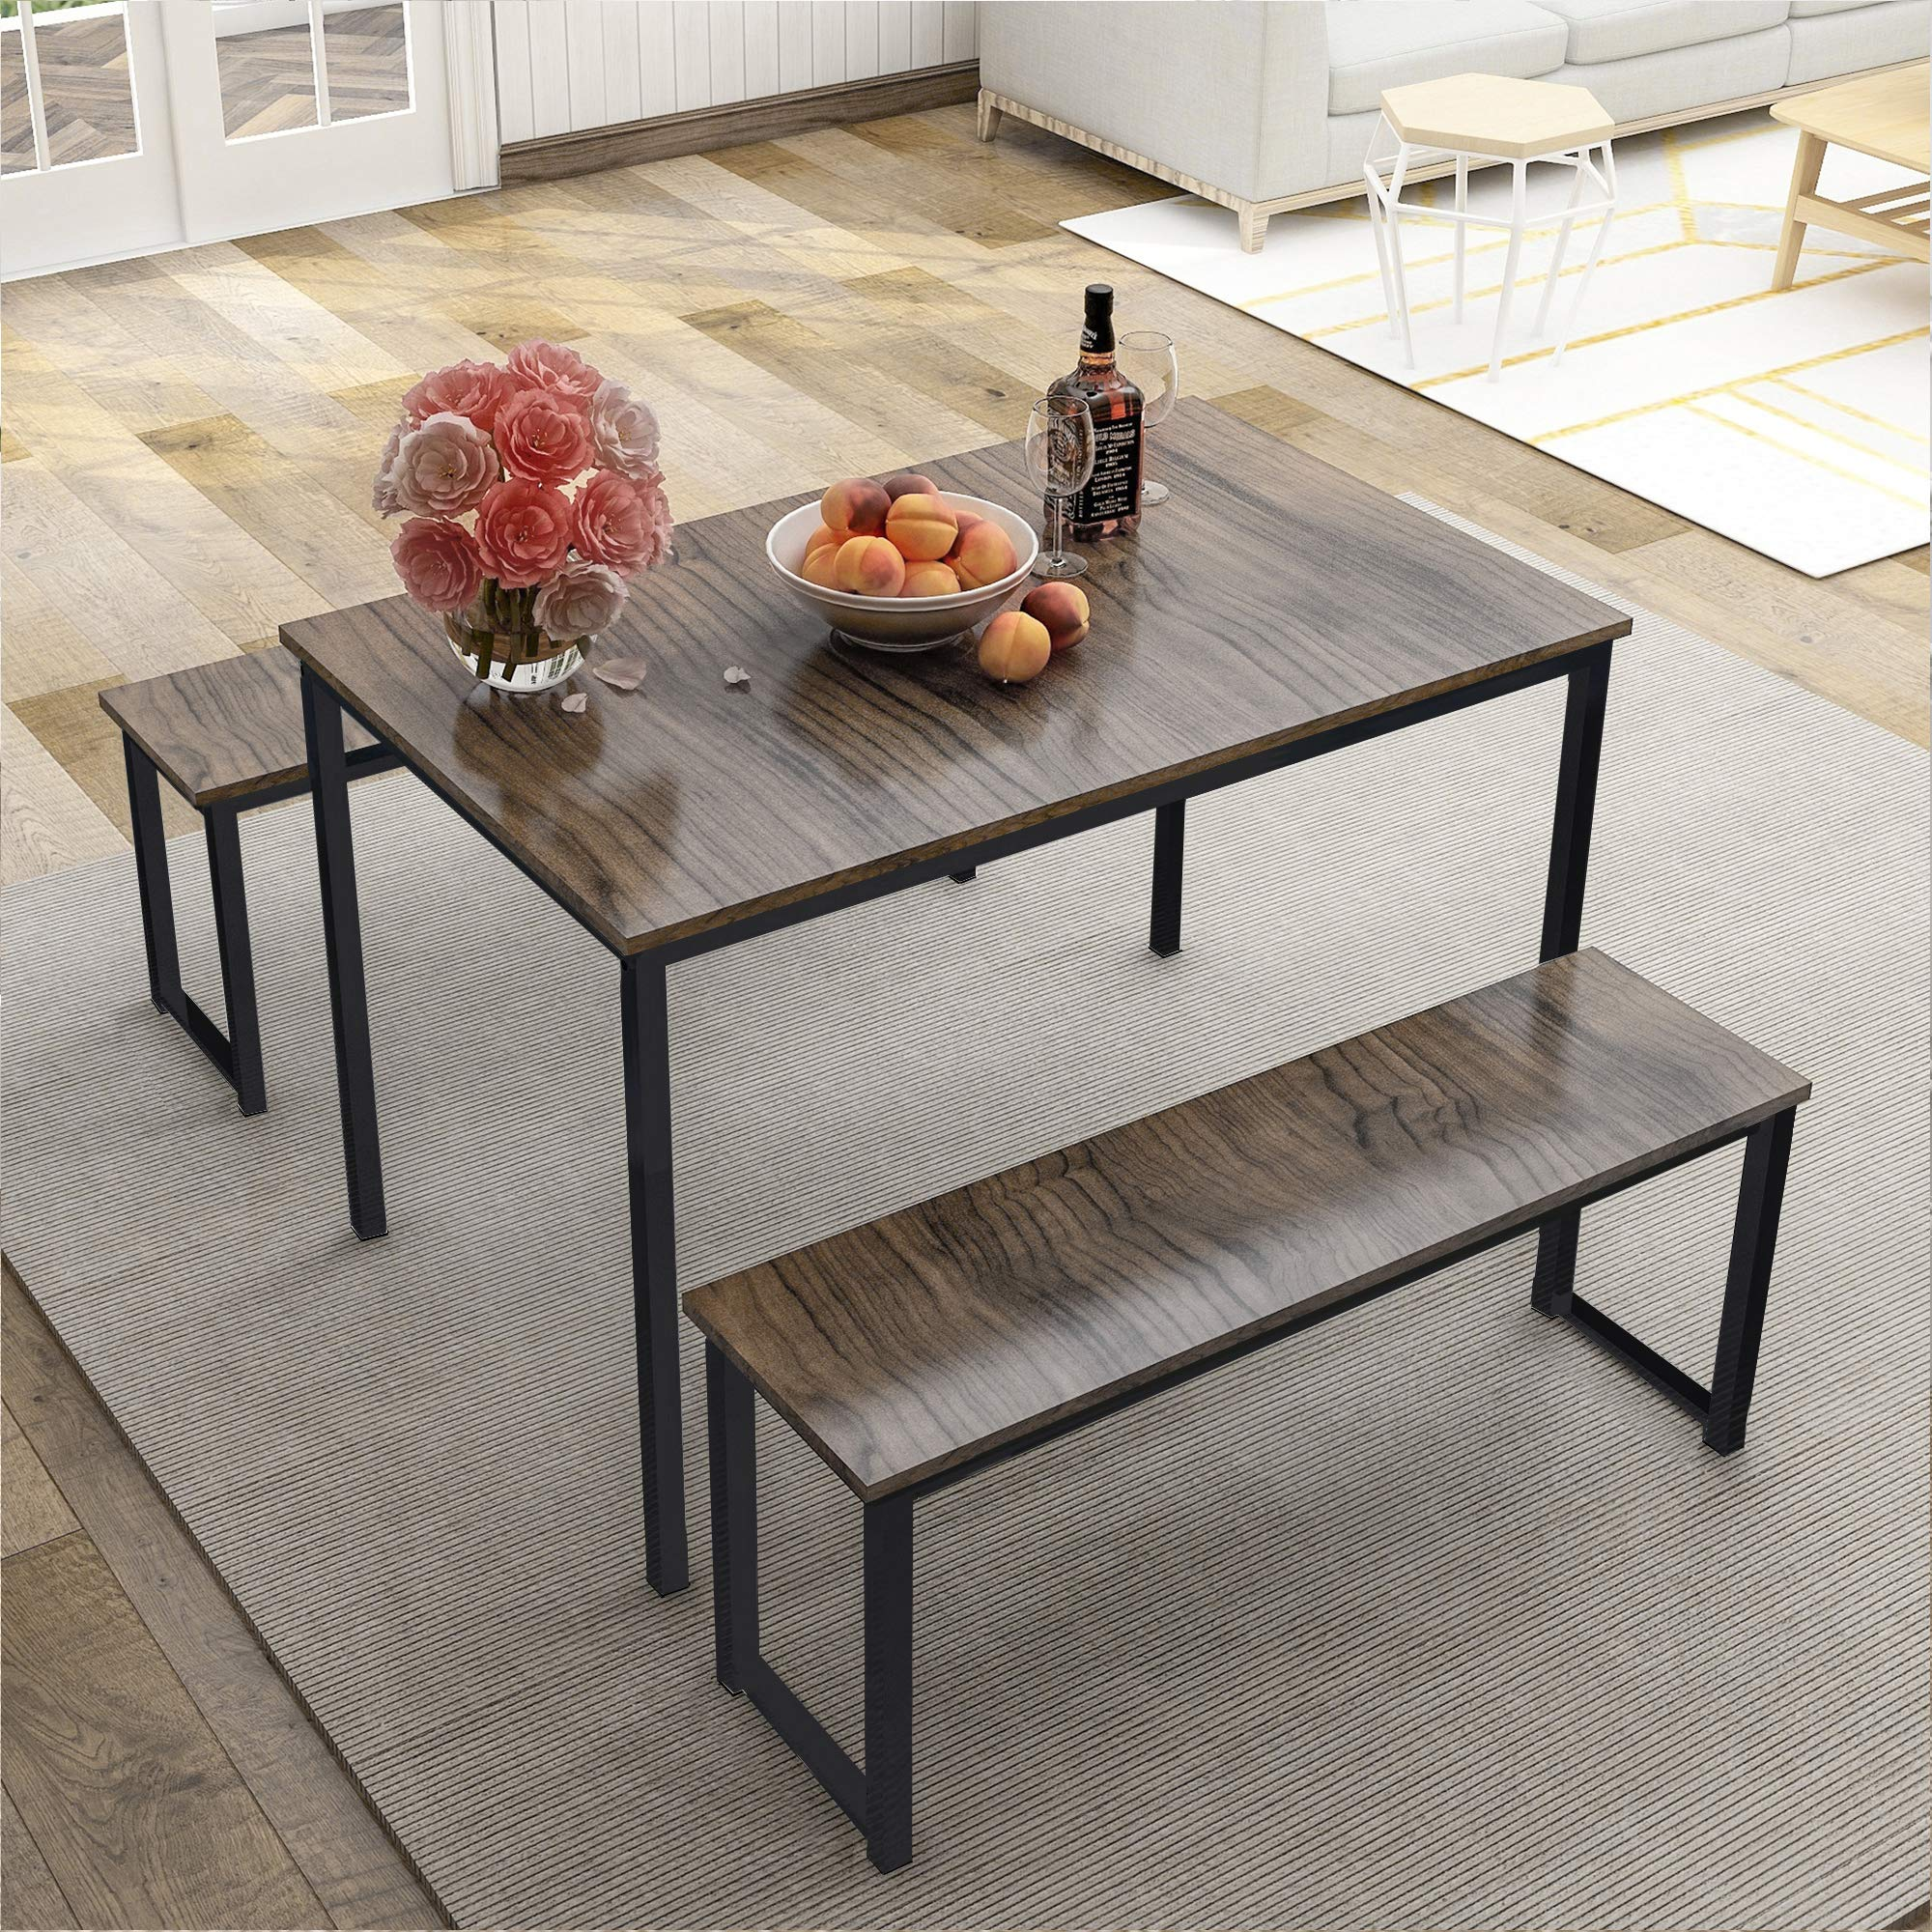 Lz Leisure Zone Dining Table Set 3 Piece Wood Kitchen Table With Two Benches Dining Room Furniture Modern Style Contemporary Brown Black Buy Online In Guernsey At Guernsey Desertcart Com Productid 185875950